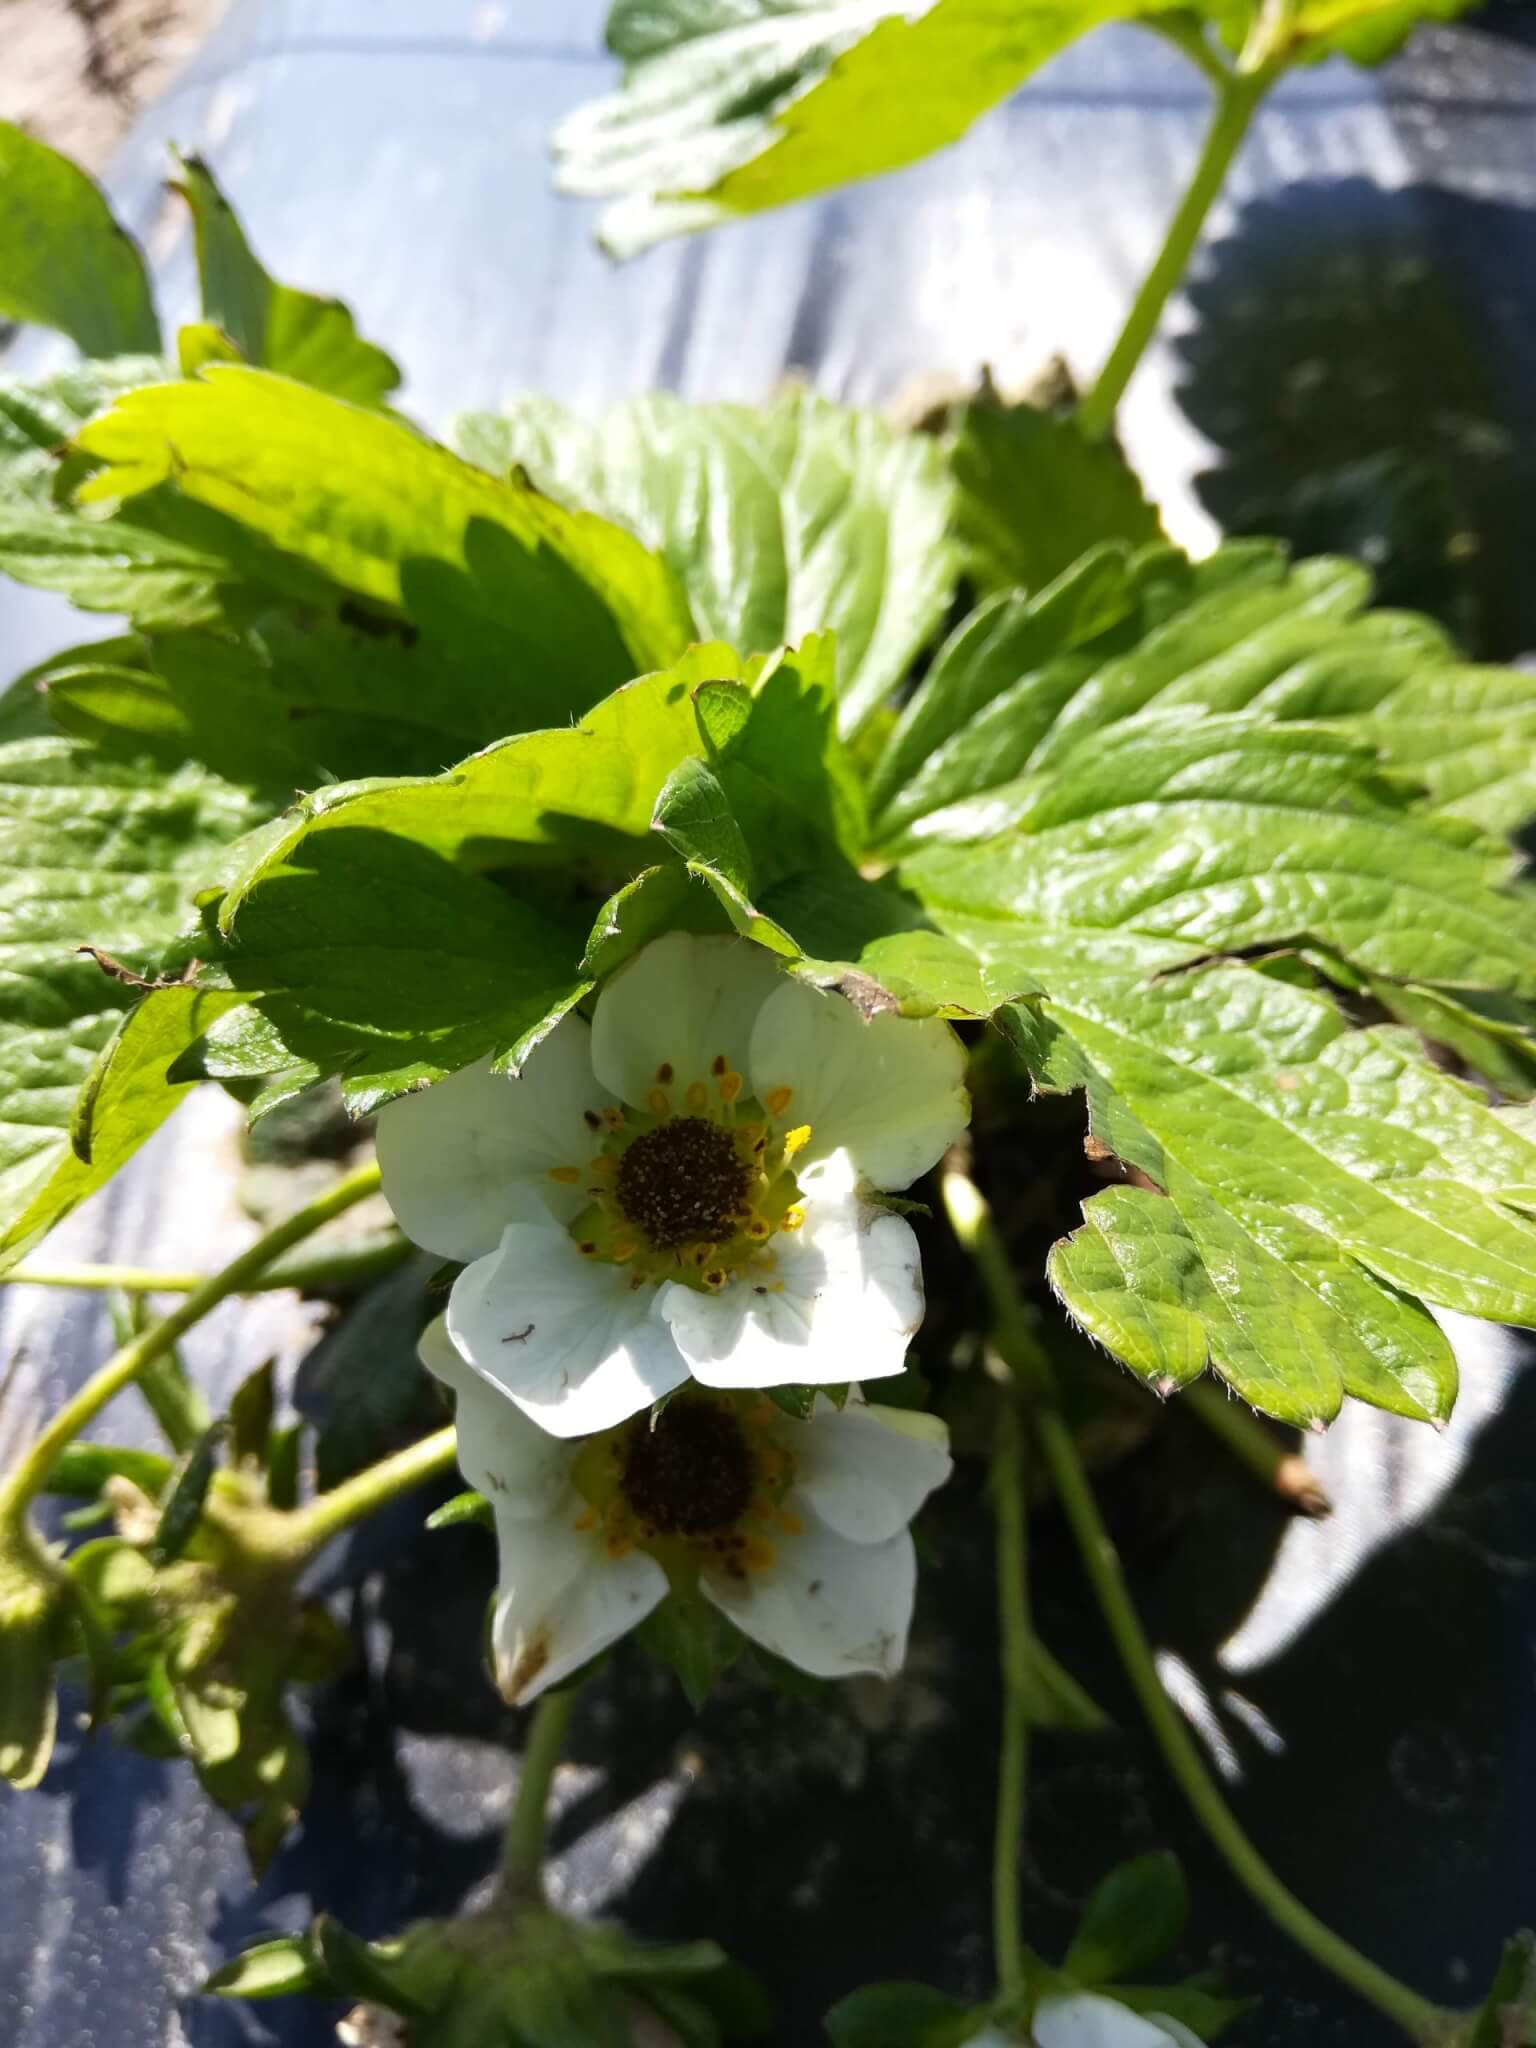 Strawberry plant frost damage.